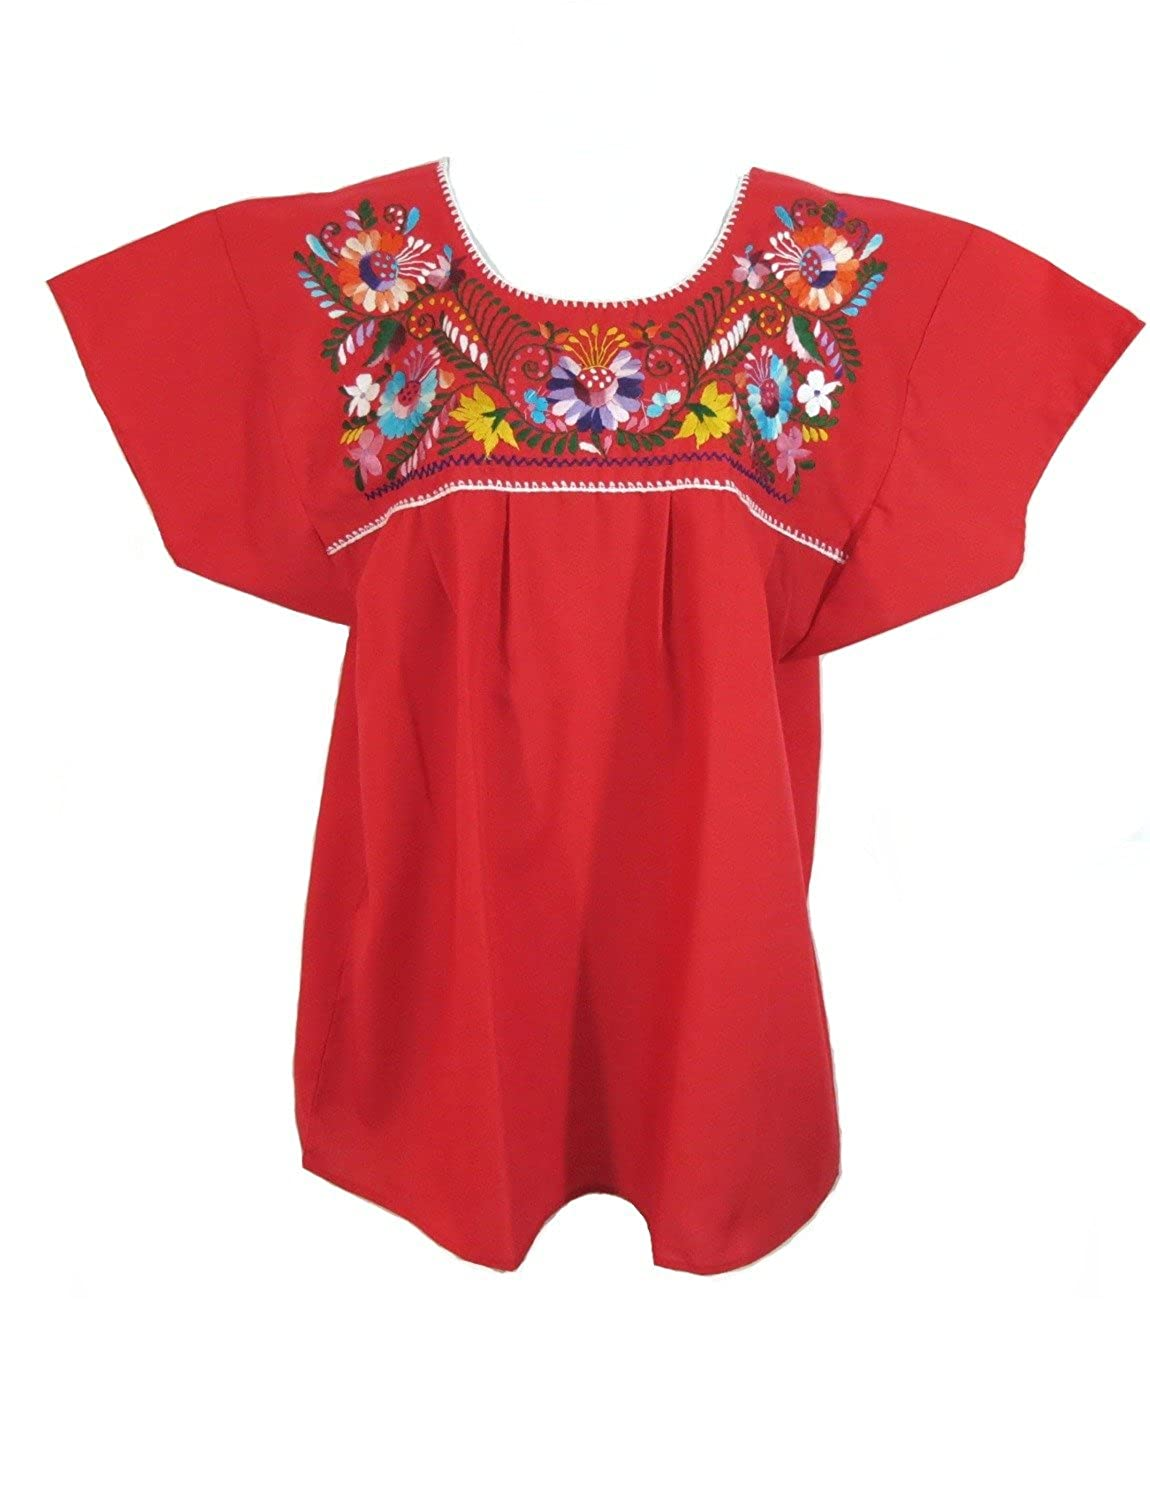 Women's Traditional Red Mexican Puebla Blouse - DeluxeAdultCostumes.com